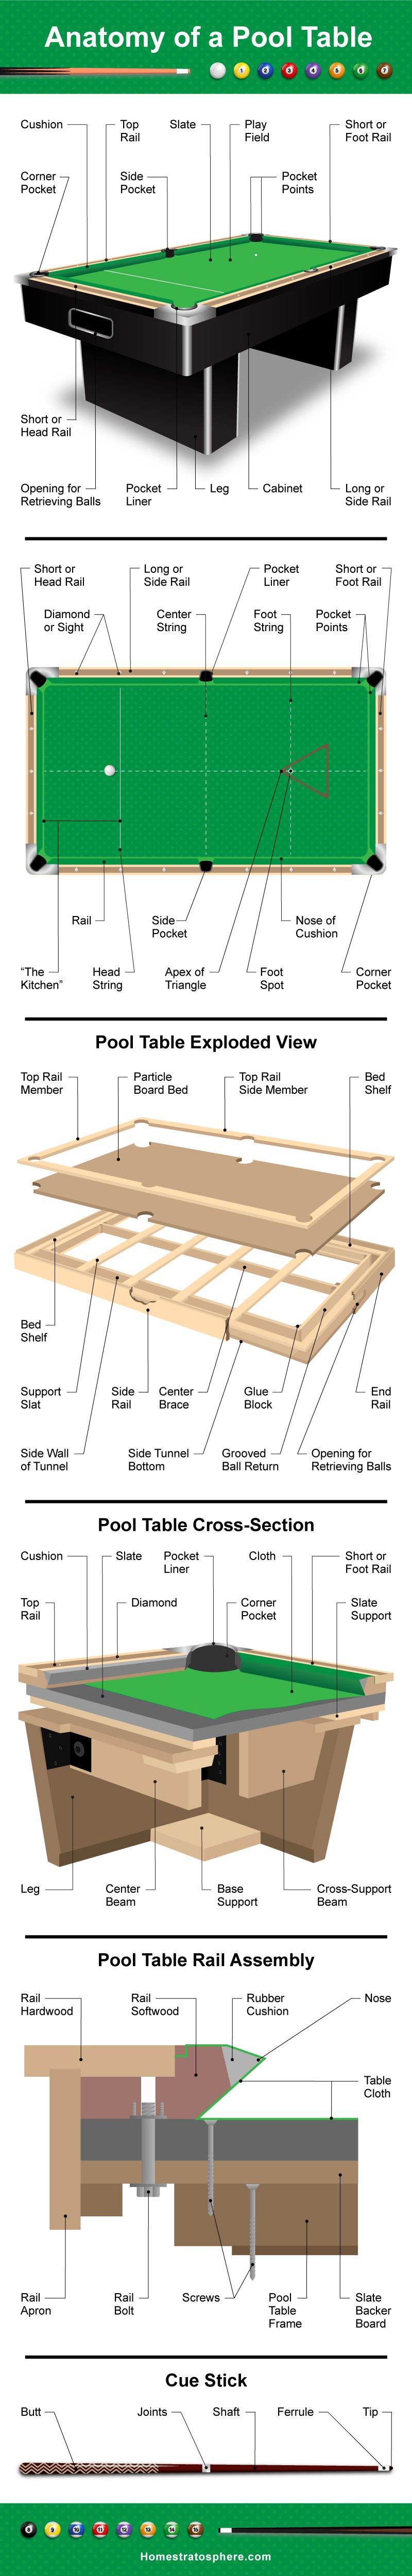 Parts Of A Pool Table And Cue Illustrated Diagrams Pool Table Pool Table Parts Pool